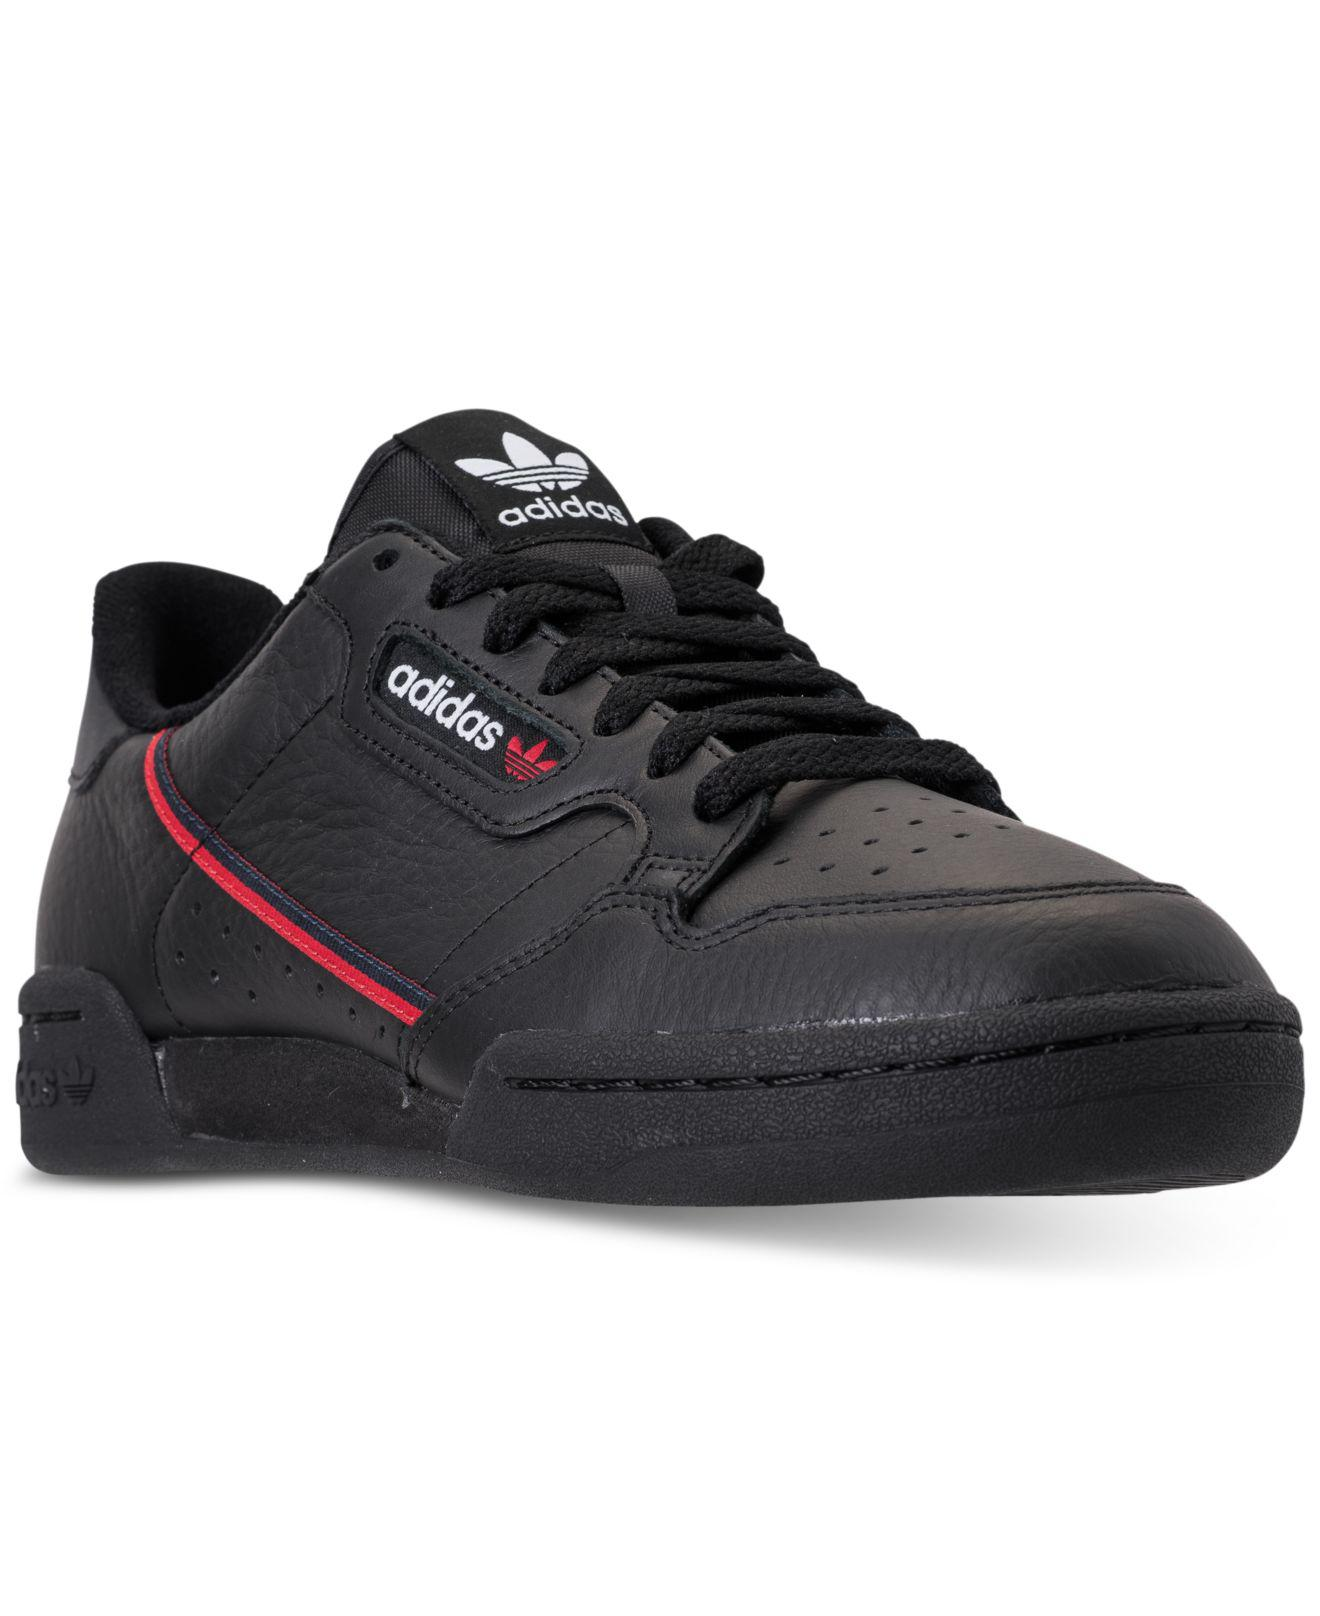 59ce2f451cf Lyst - adidas Men s Continental 80 Leather Low-top Sneakers in Black ...